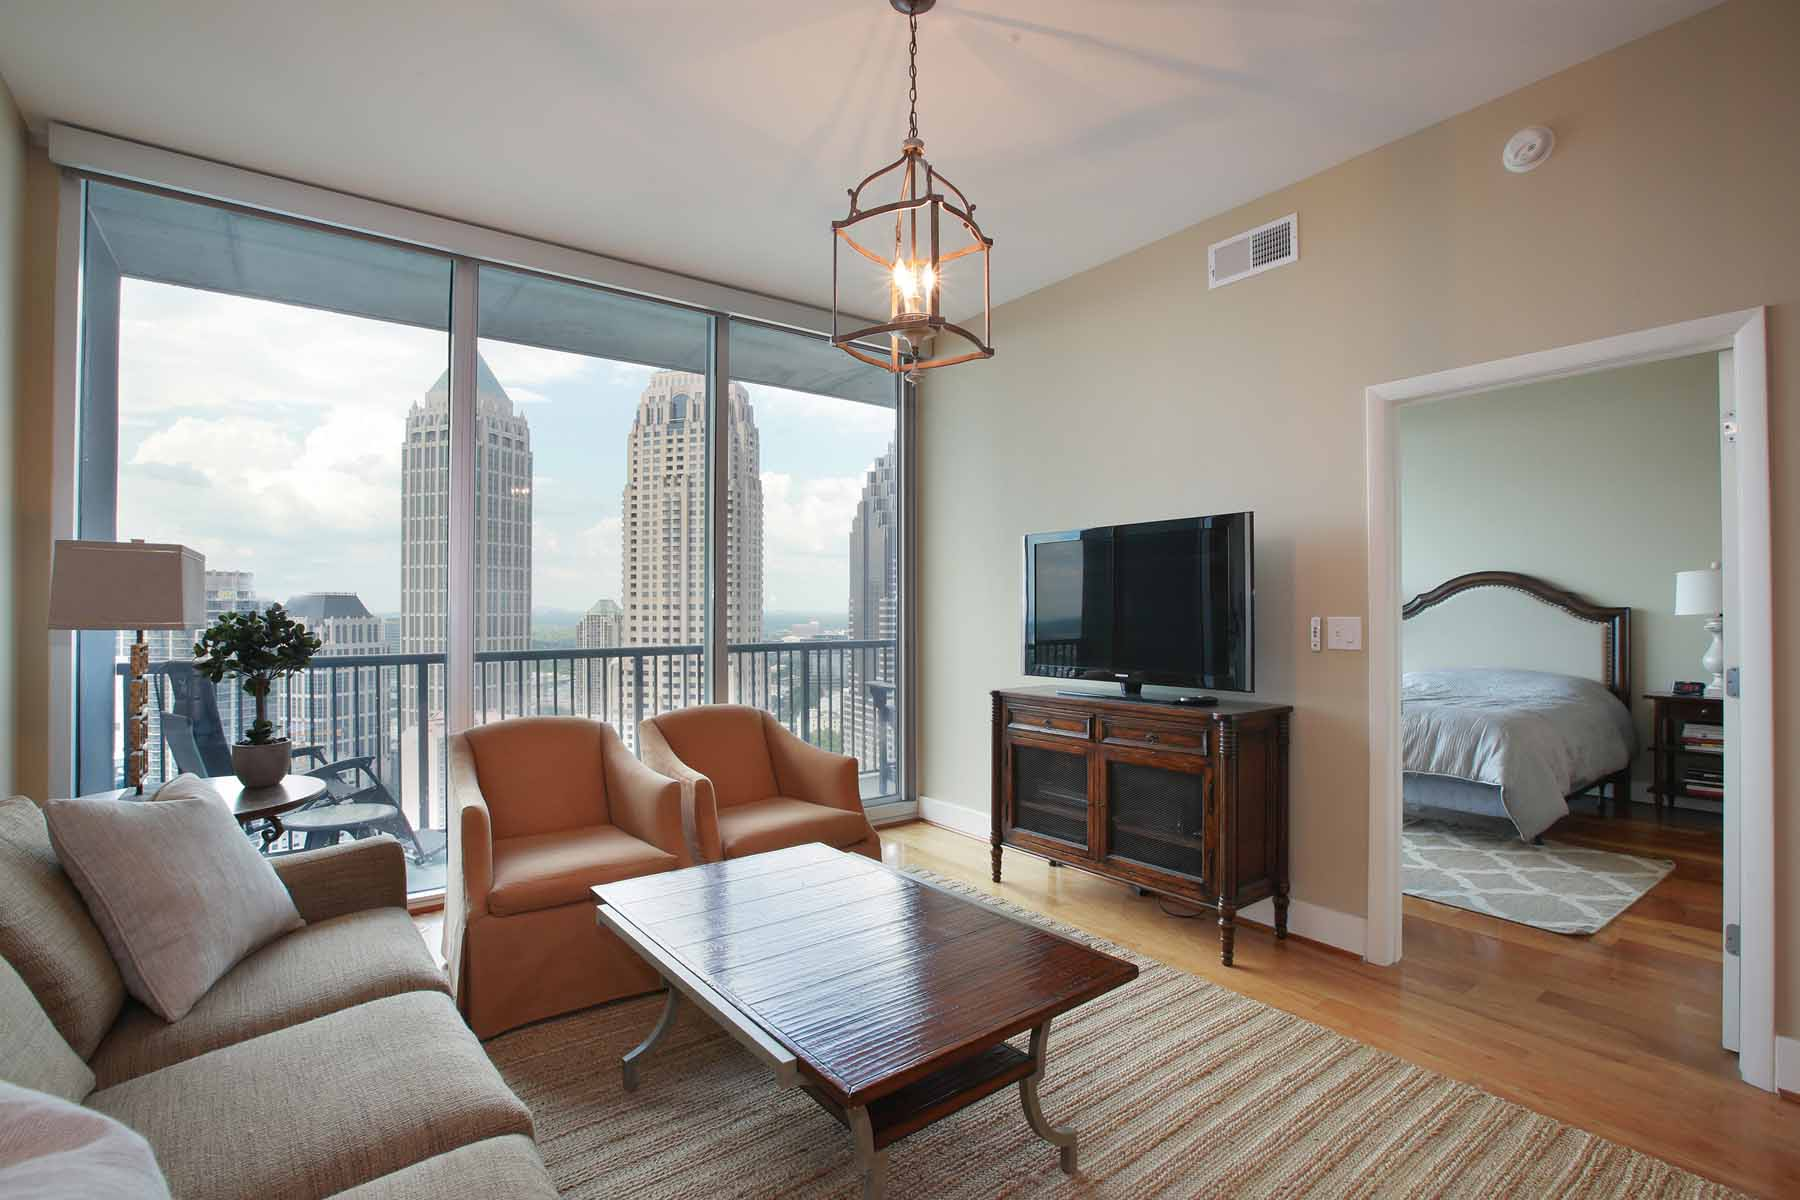 Condominium for Sale at High Floor Midtown Condo 1080 Peachtree Street NE #2701 Atlanta, Georgia, 30309 United States